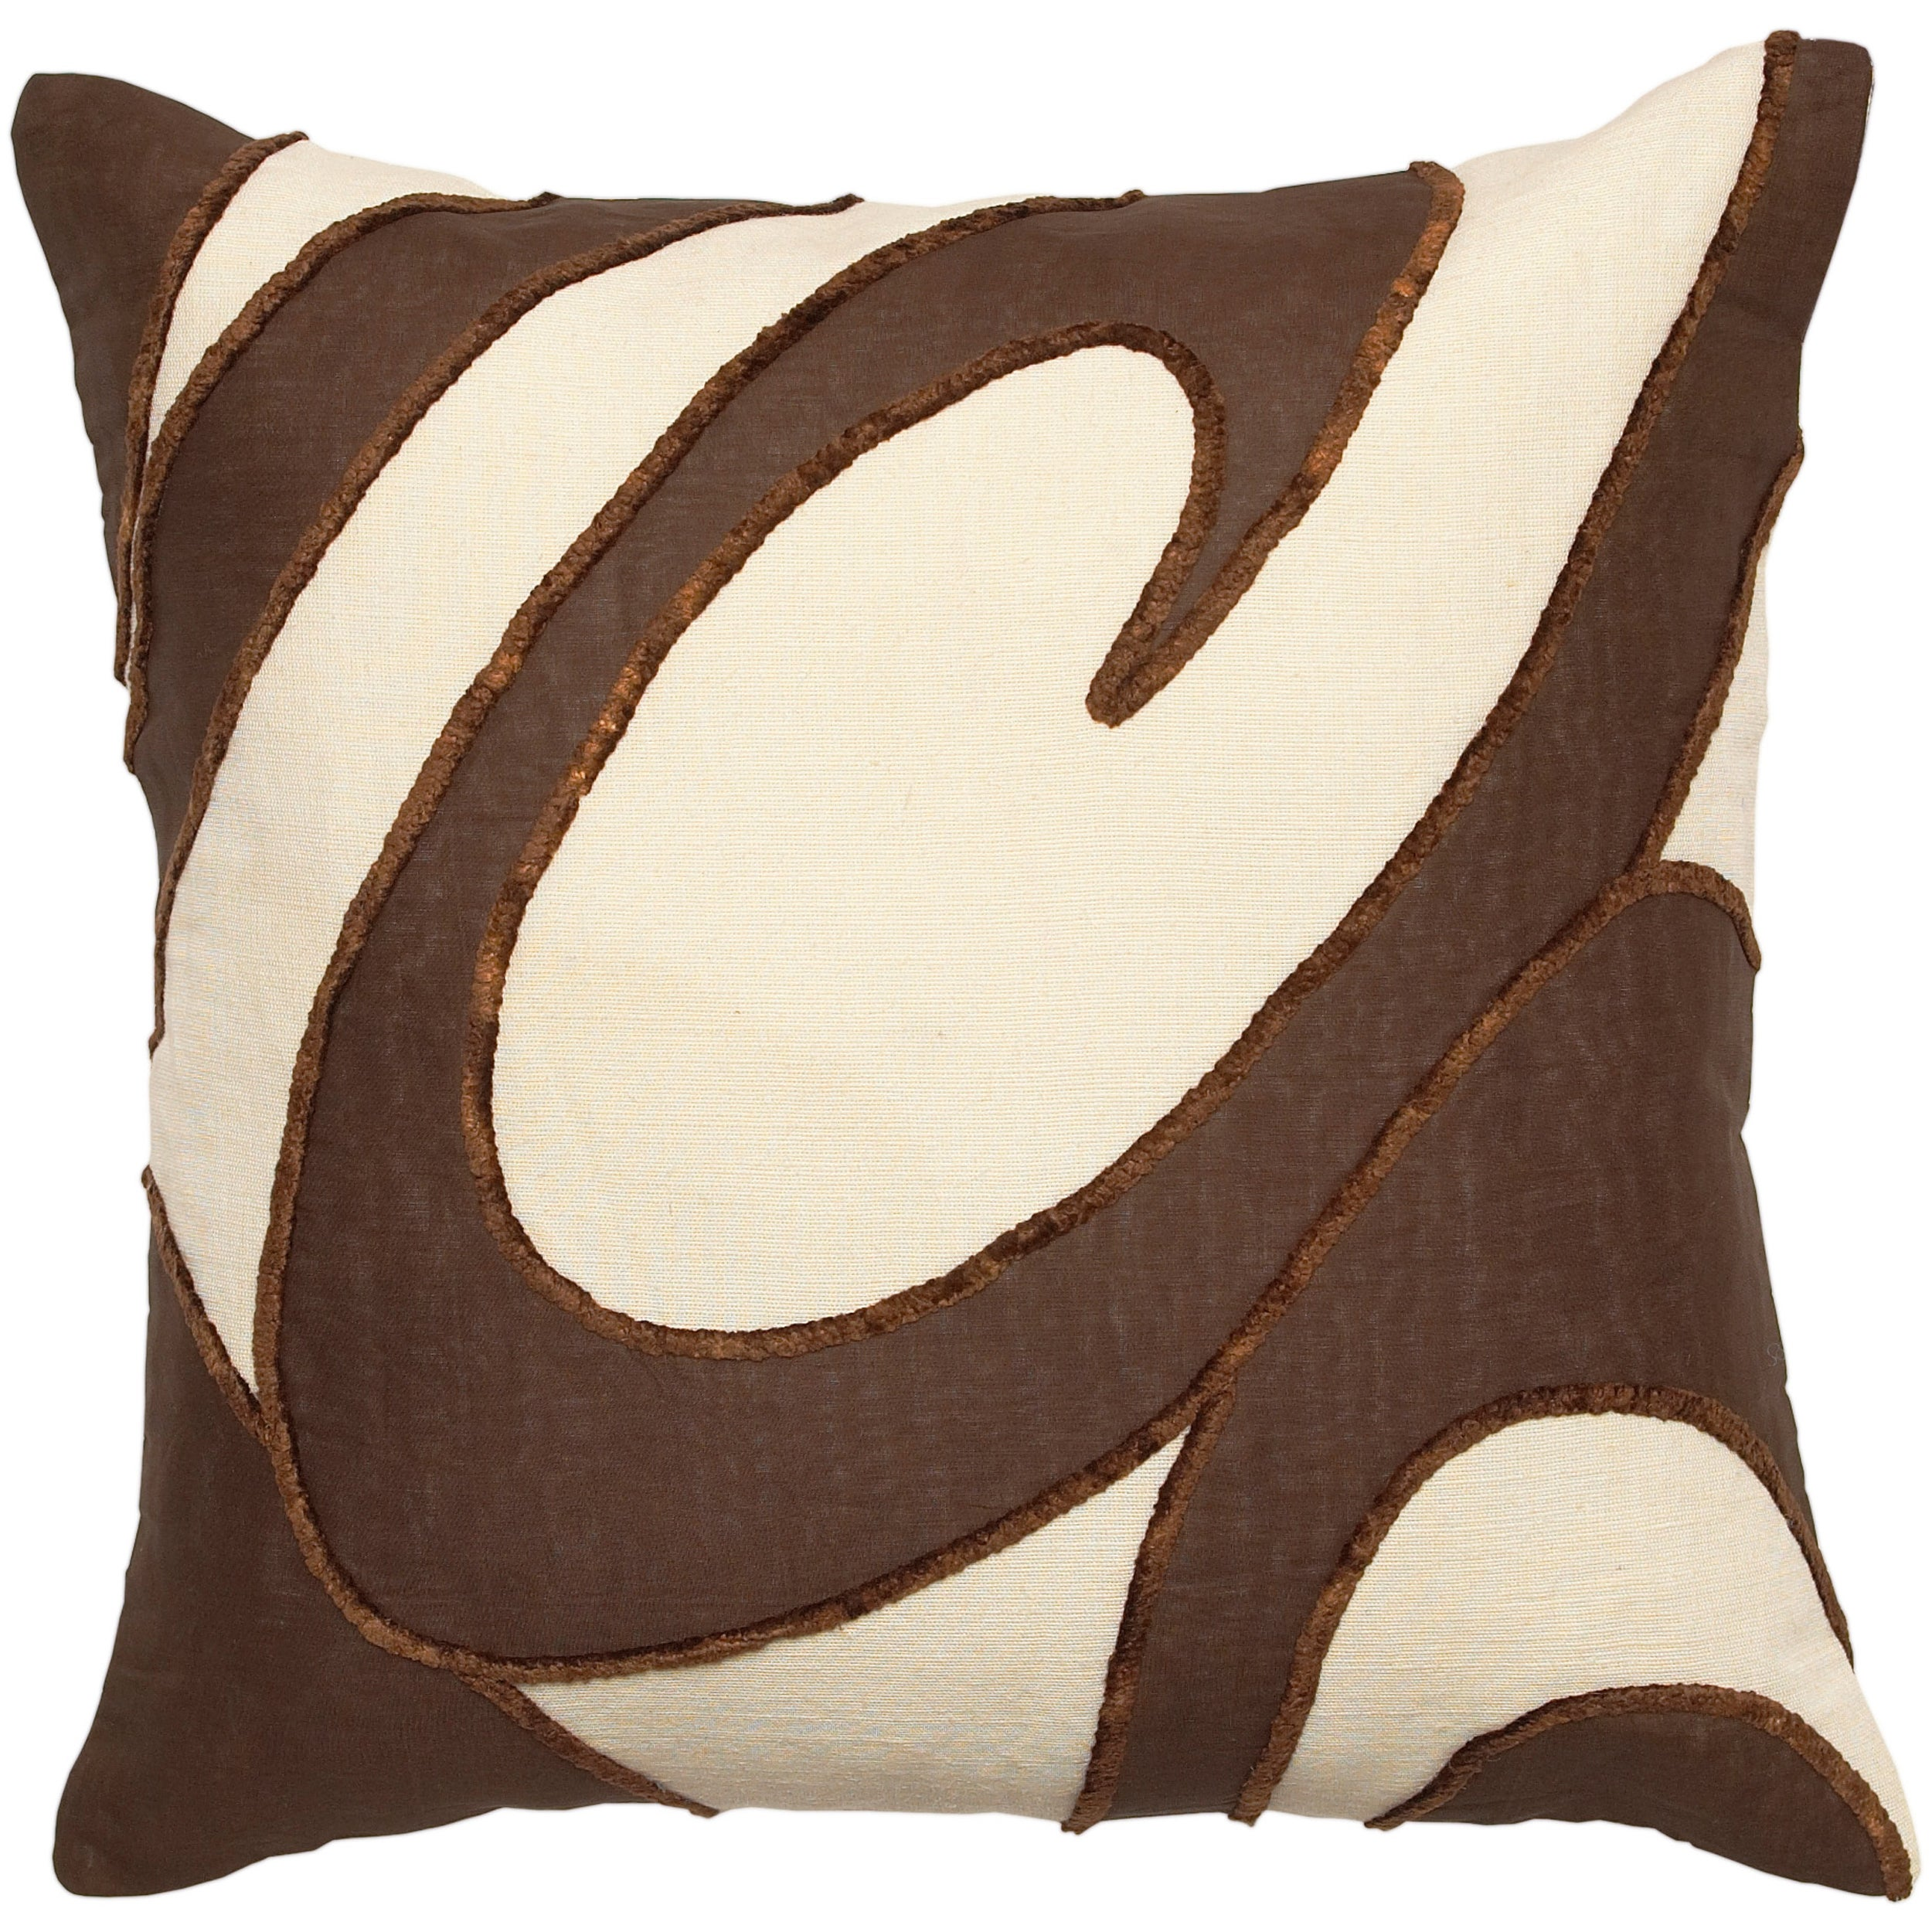 Bouy Chocolate/ Cream Decorative Pillow - 14024782 - Overstock.com Shopping - Great Deals on ...